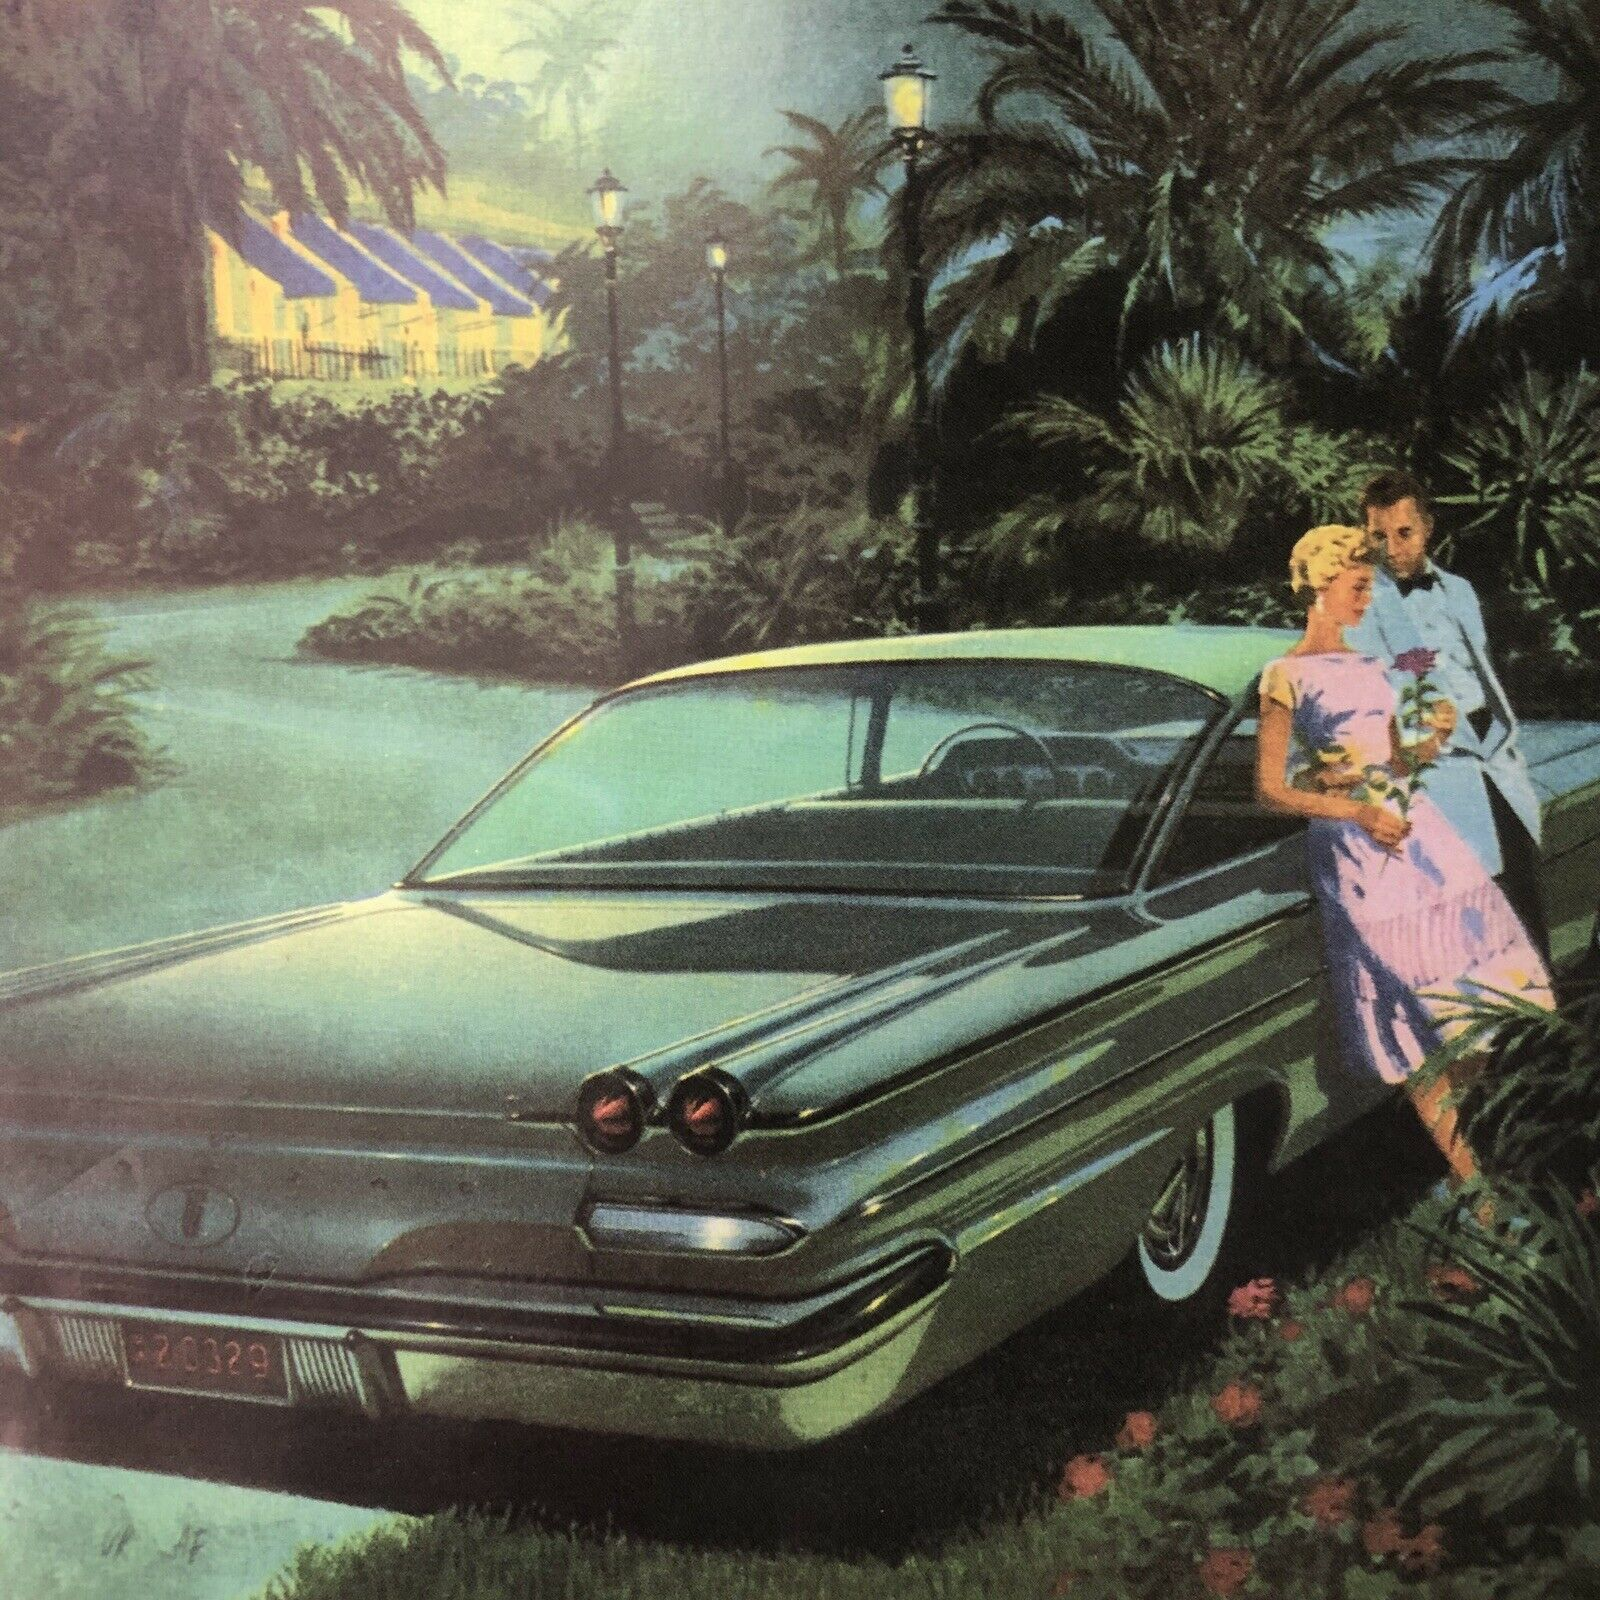 Primary image for 1960 Pontiac Ventura Sports Coupe Date Night Print Ad 11 X 8 1/4